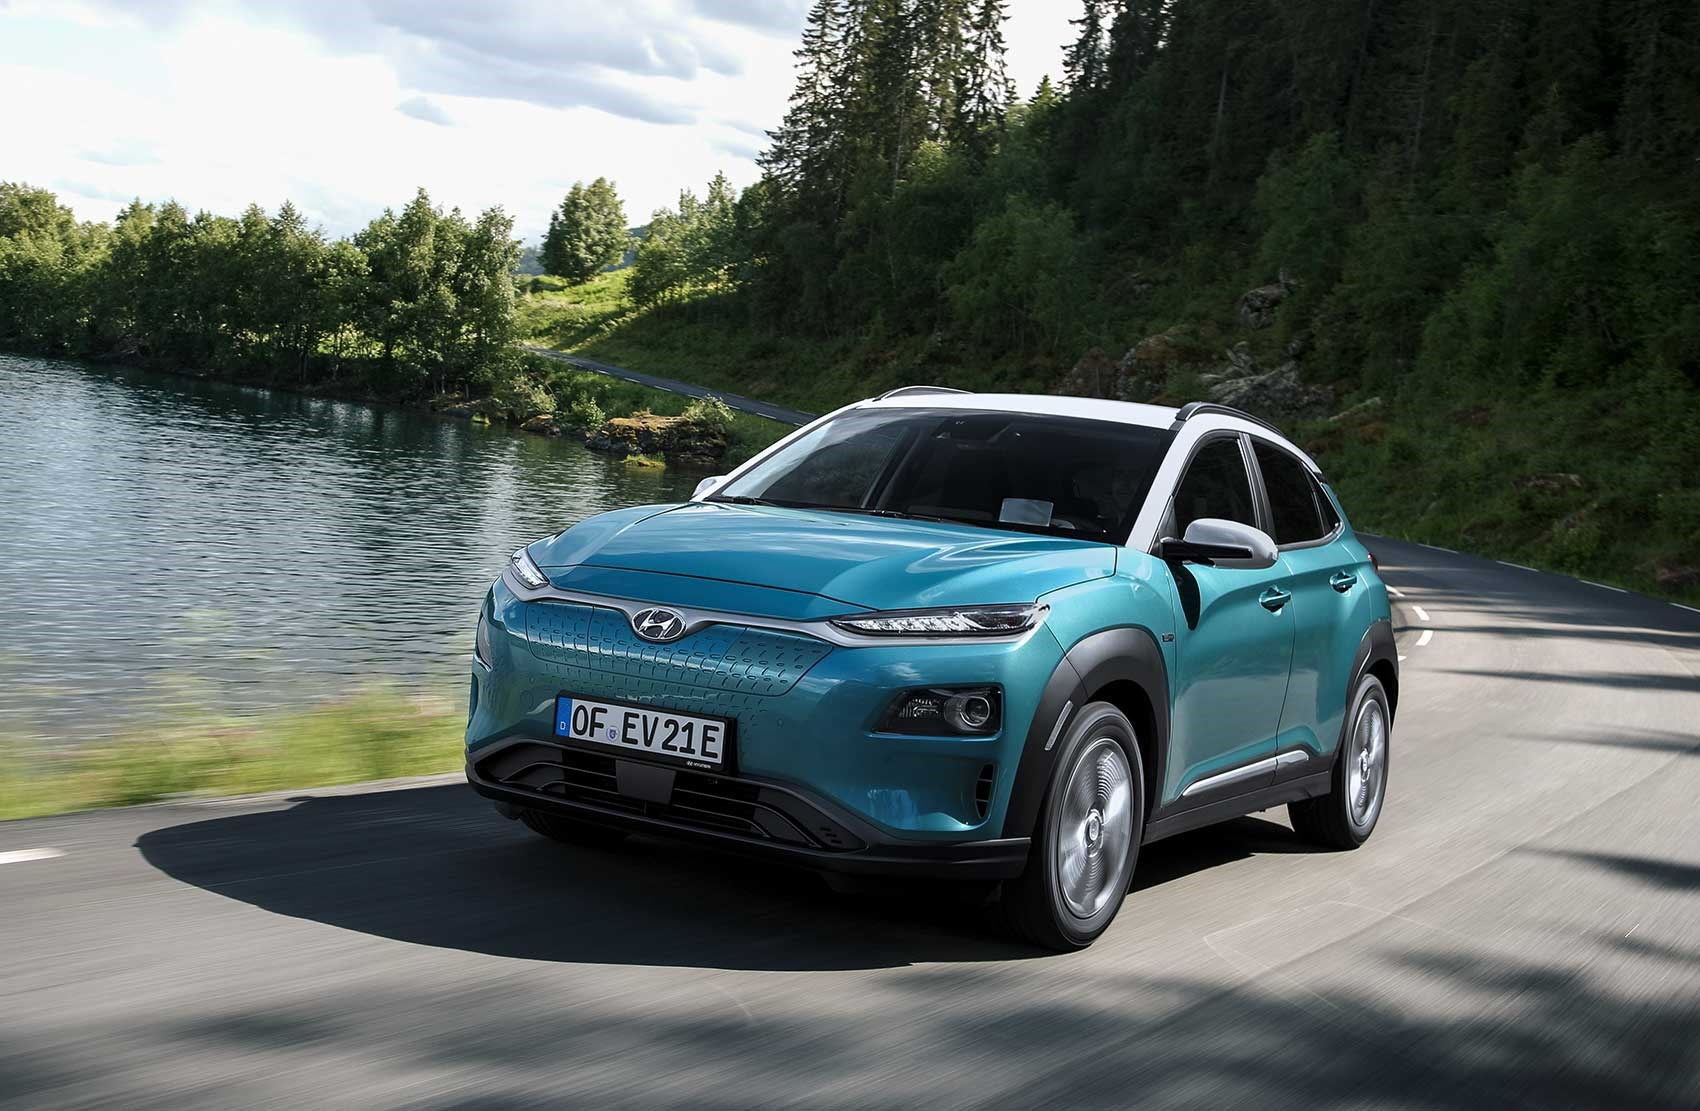 Hyundai Kona Electric A Great Affordable Family Ev With Near 300 Mile Range